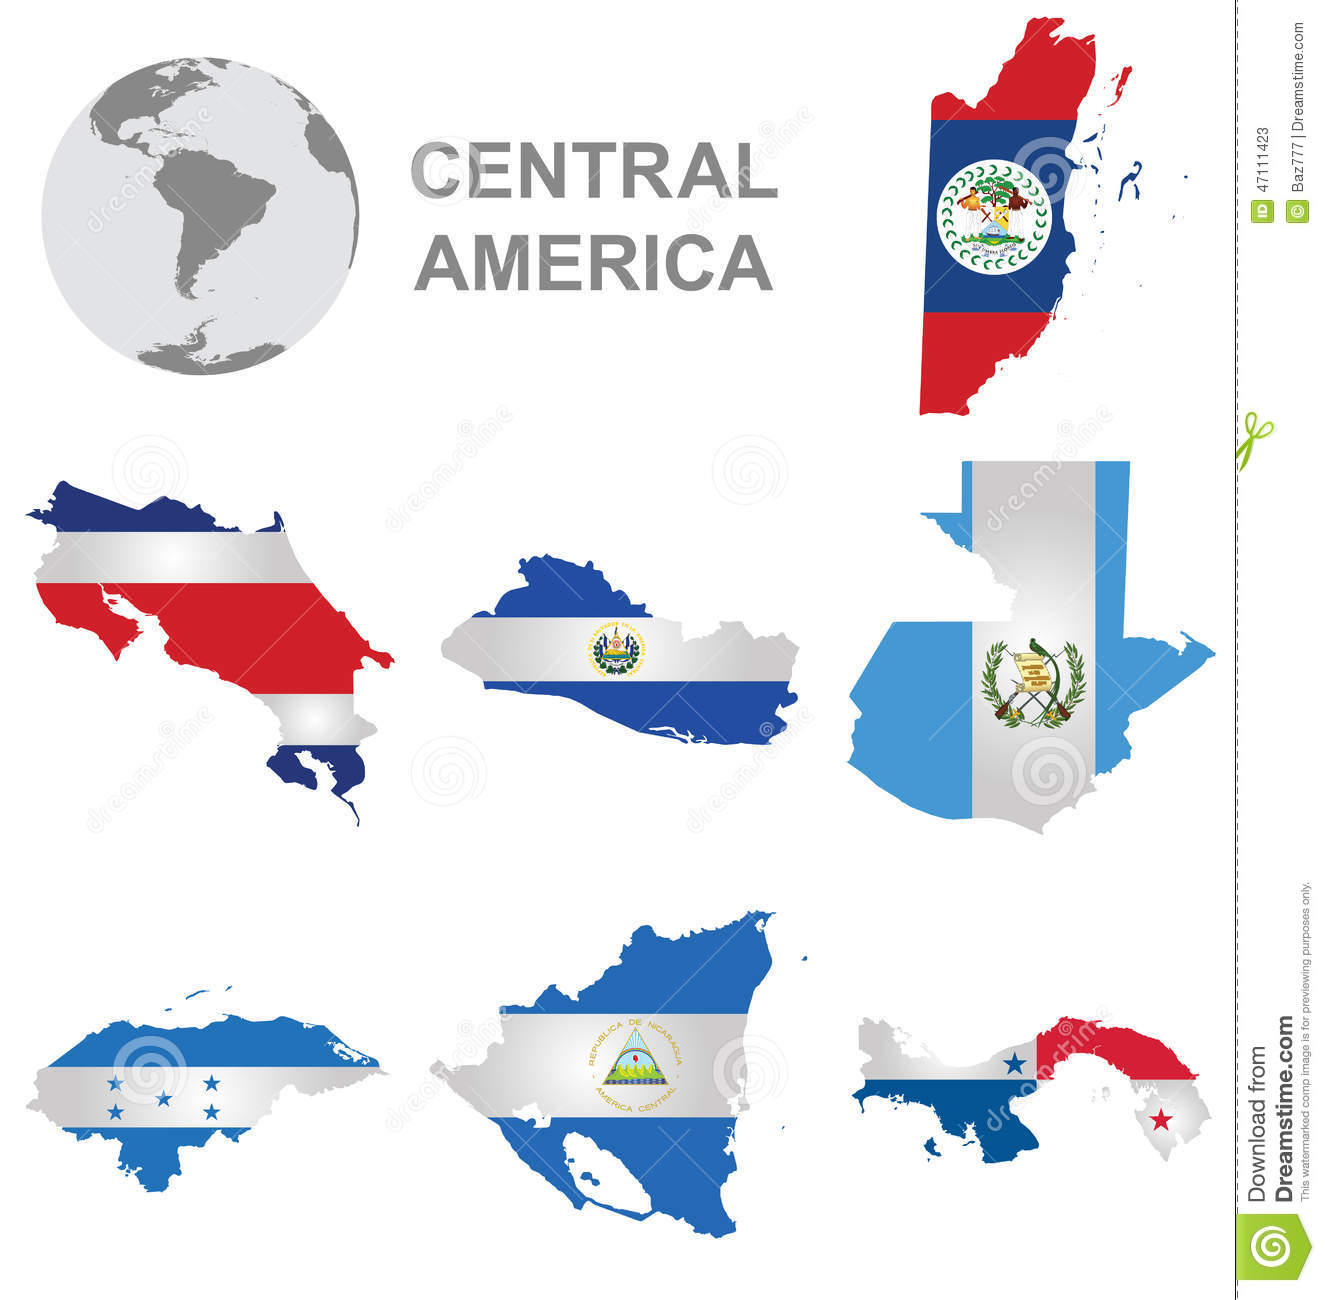 Central American Countries Stock Illustration - Image: 47111423